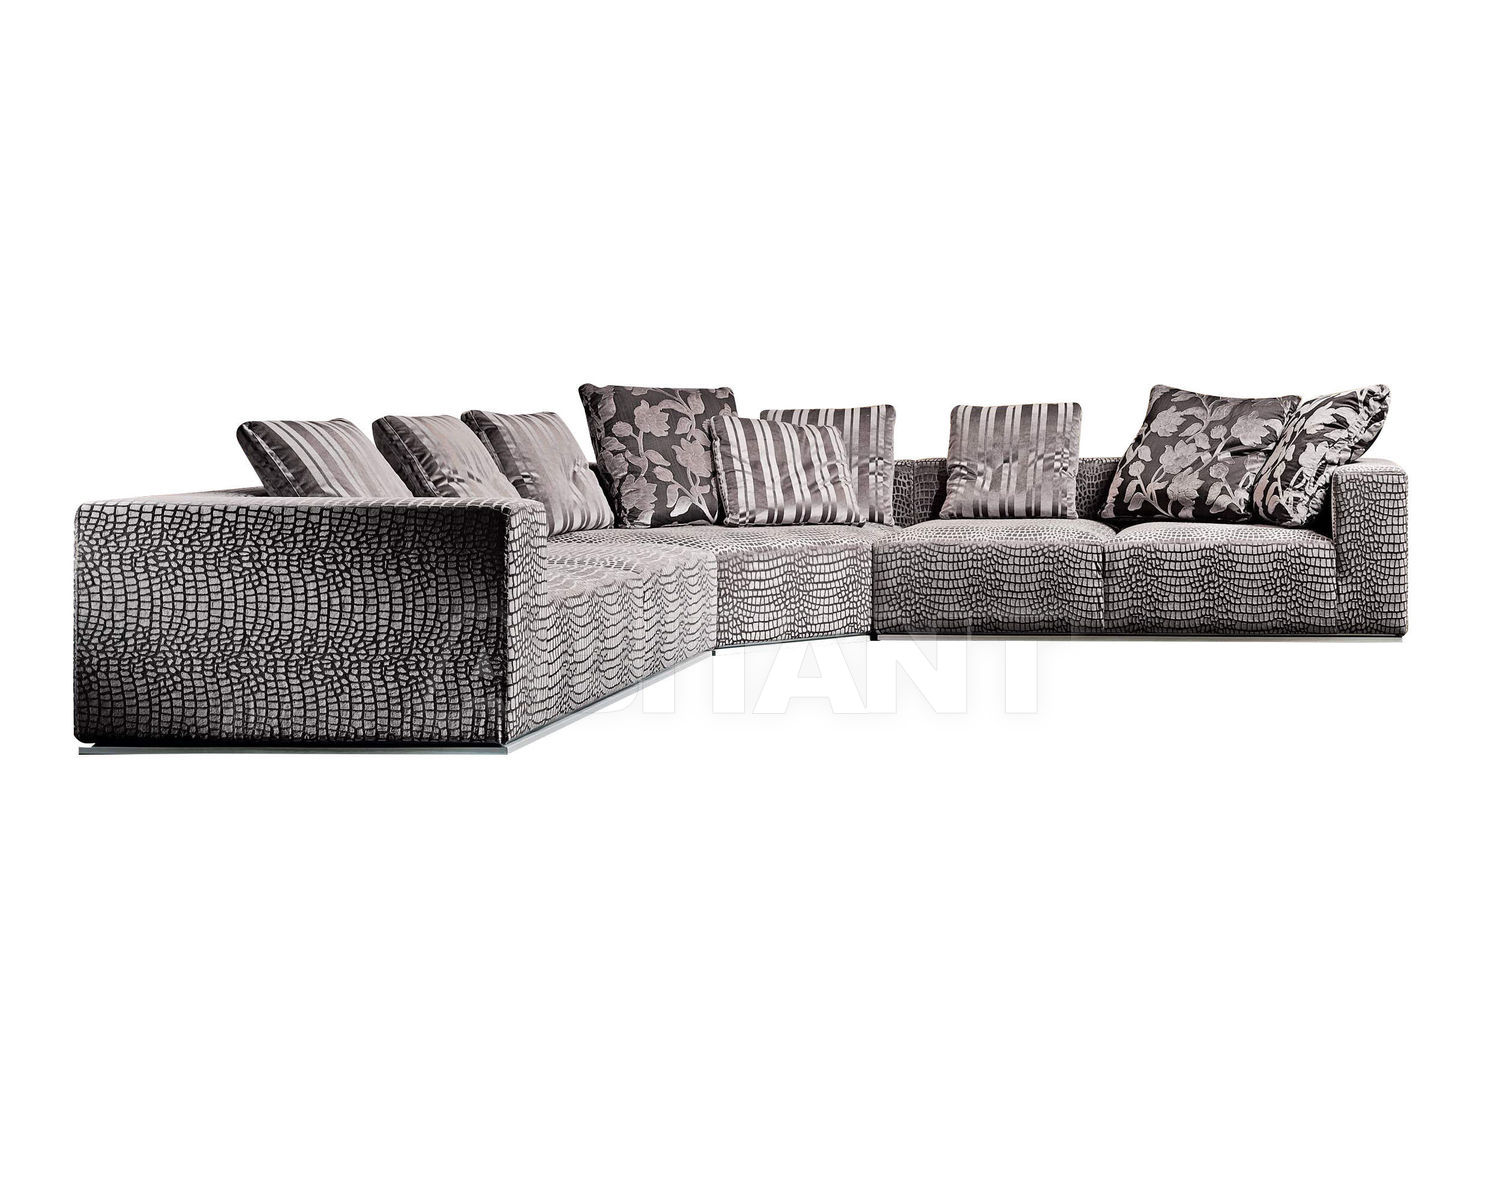 Купить Диван Formerin Contemporary Modern MY CLOON 2 x Divano terminale/Sofa with 1 arm + Angolo poltrona/Angle arm-chair